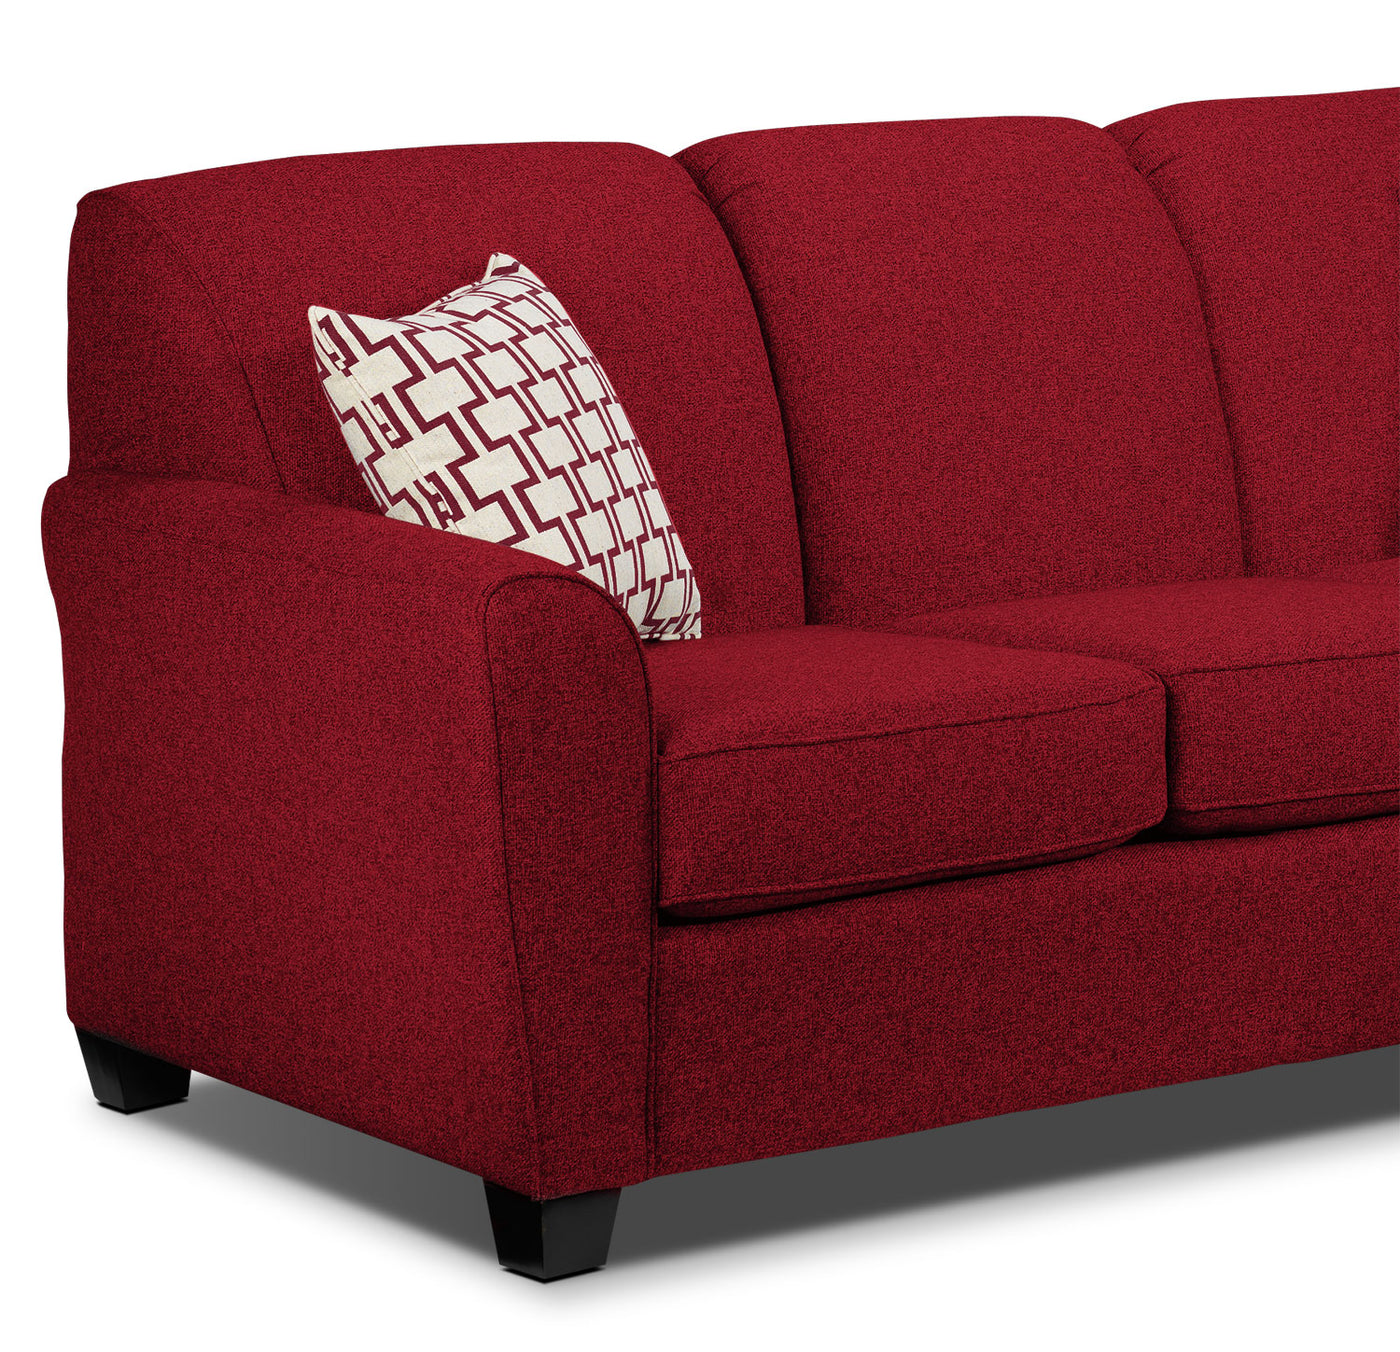 Enjoyable Ashby Chaise Sofa Red Andrewgaddart Wooden Chair Designs For Living Room Andrewgaddartcom